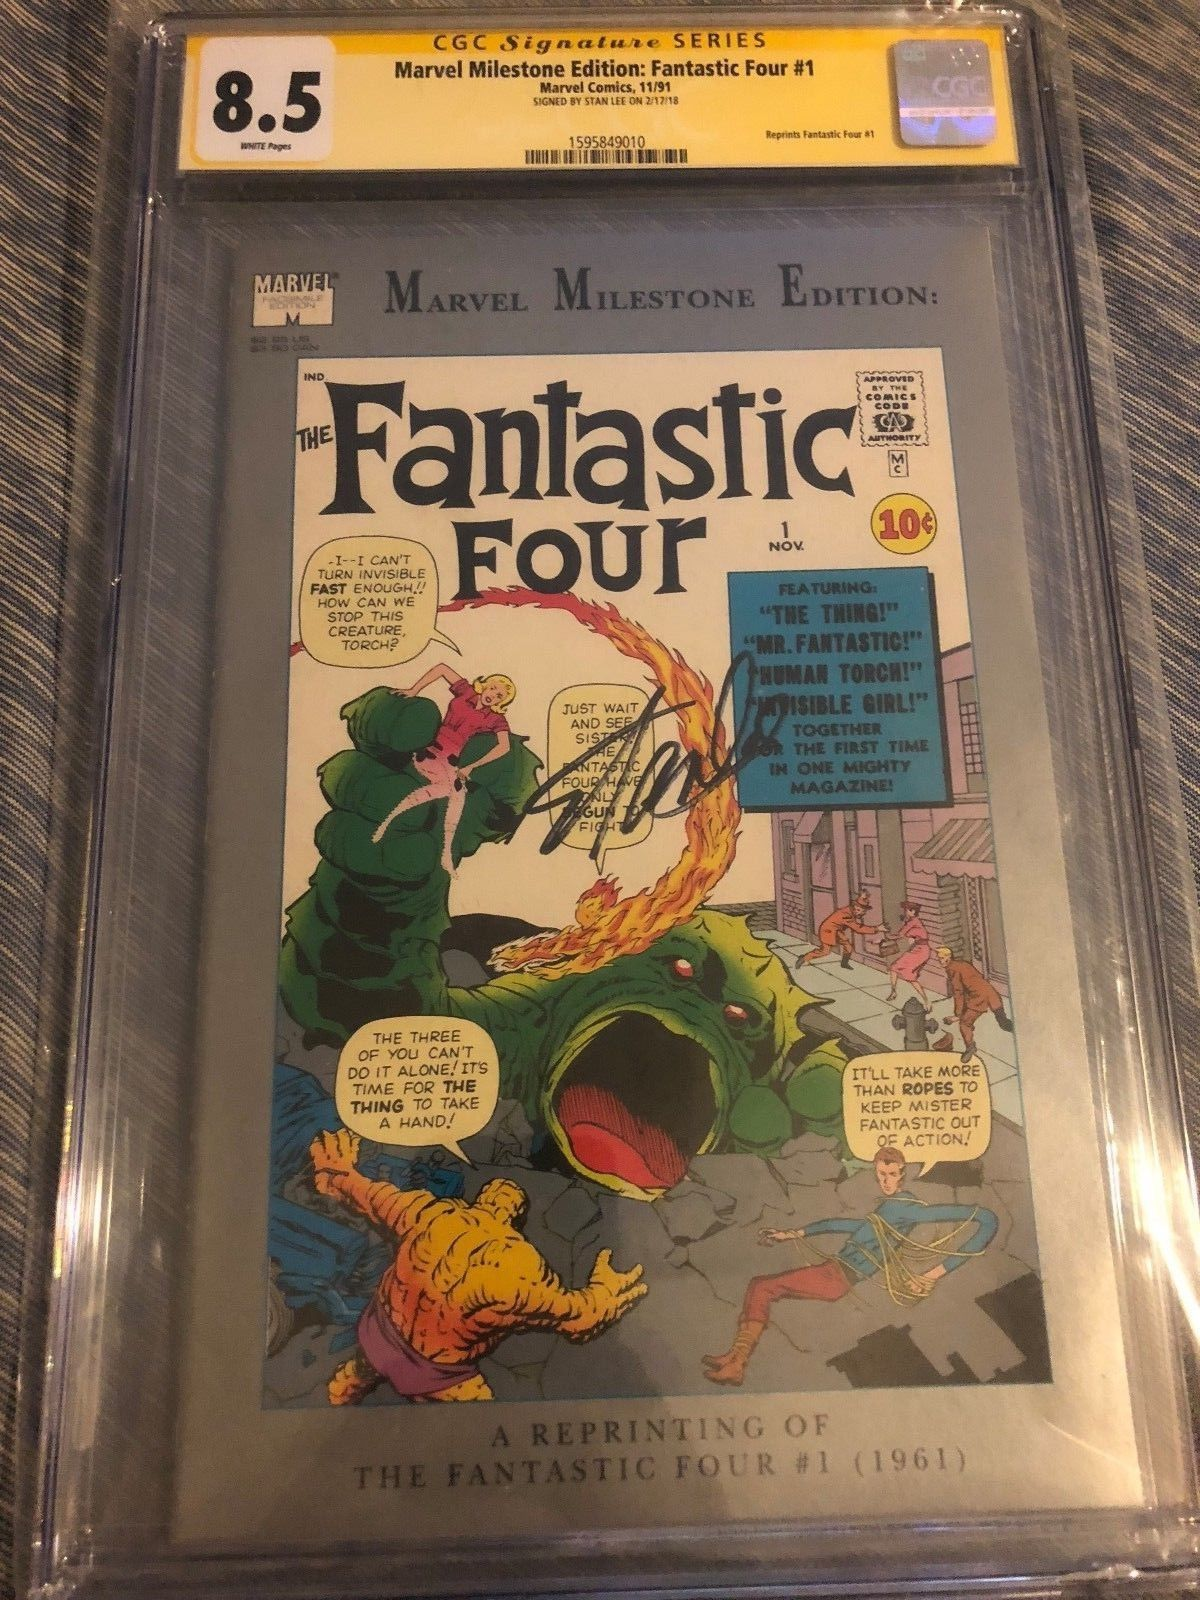 STAN LEE SIGNED FANTASTIC FOUR #1 MILESTONE EDITION CGC 8.5 SS